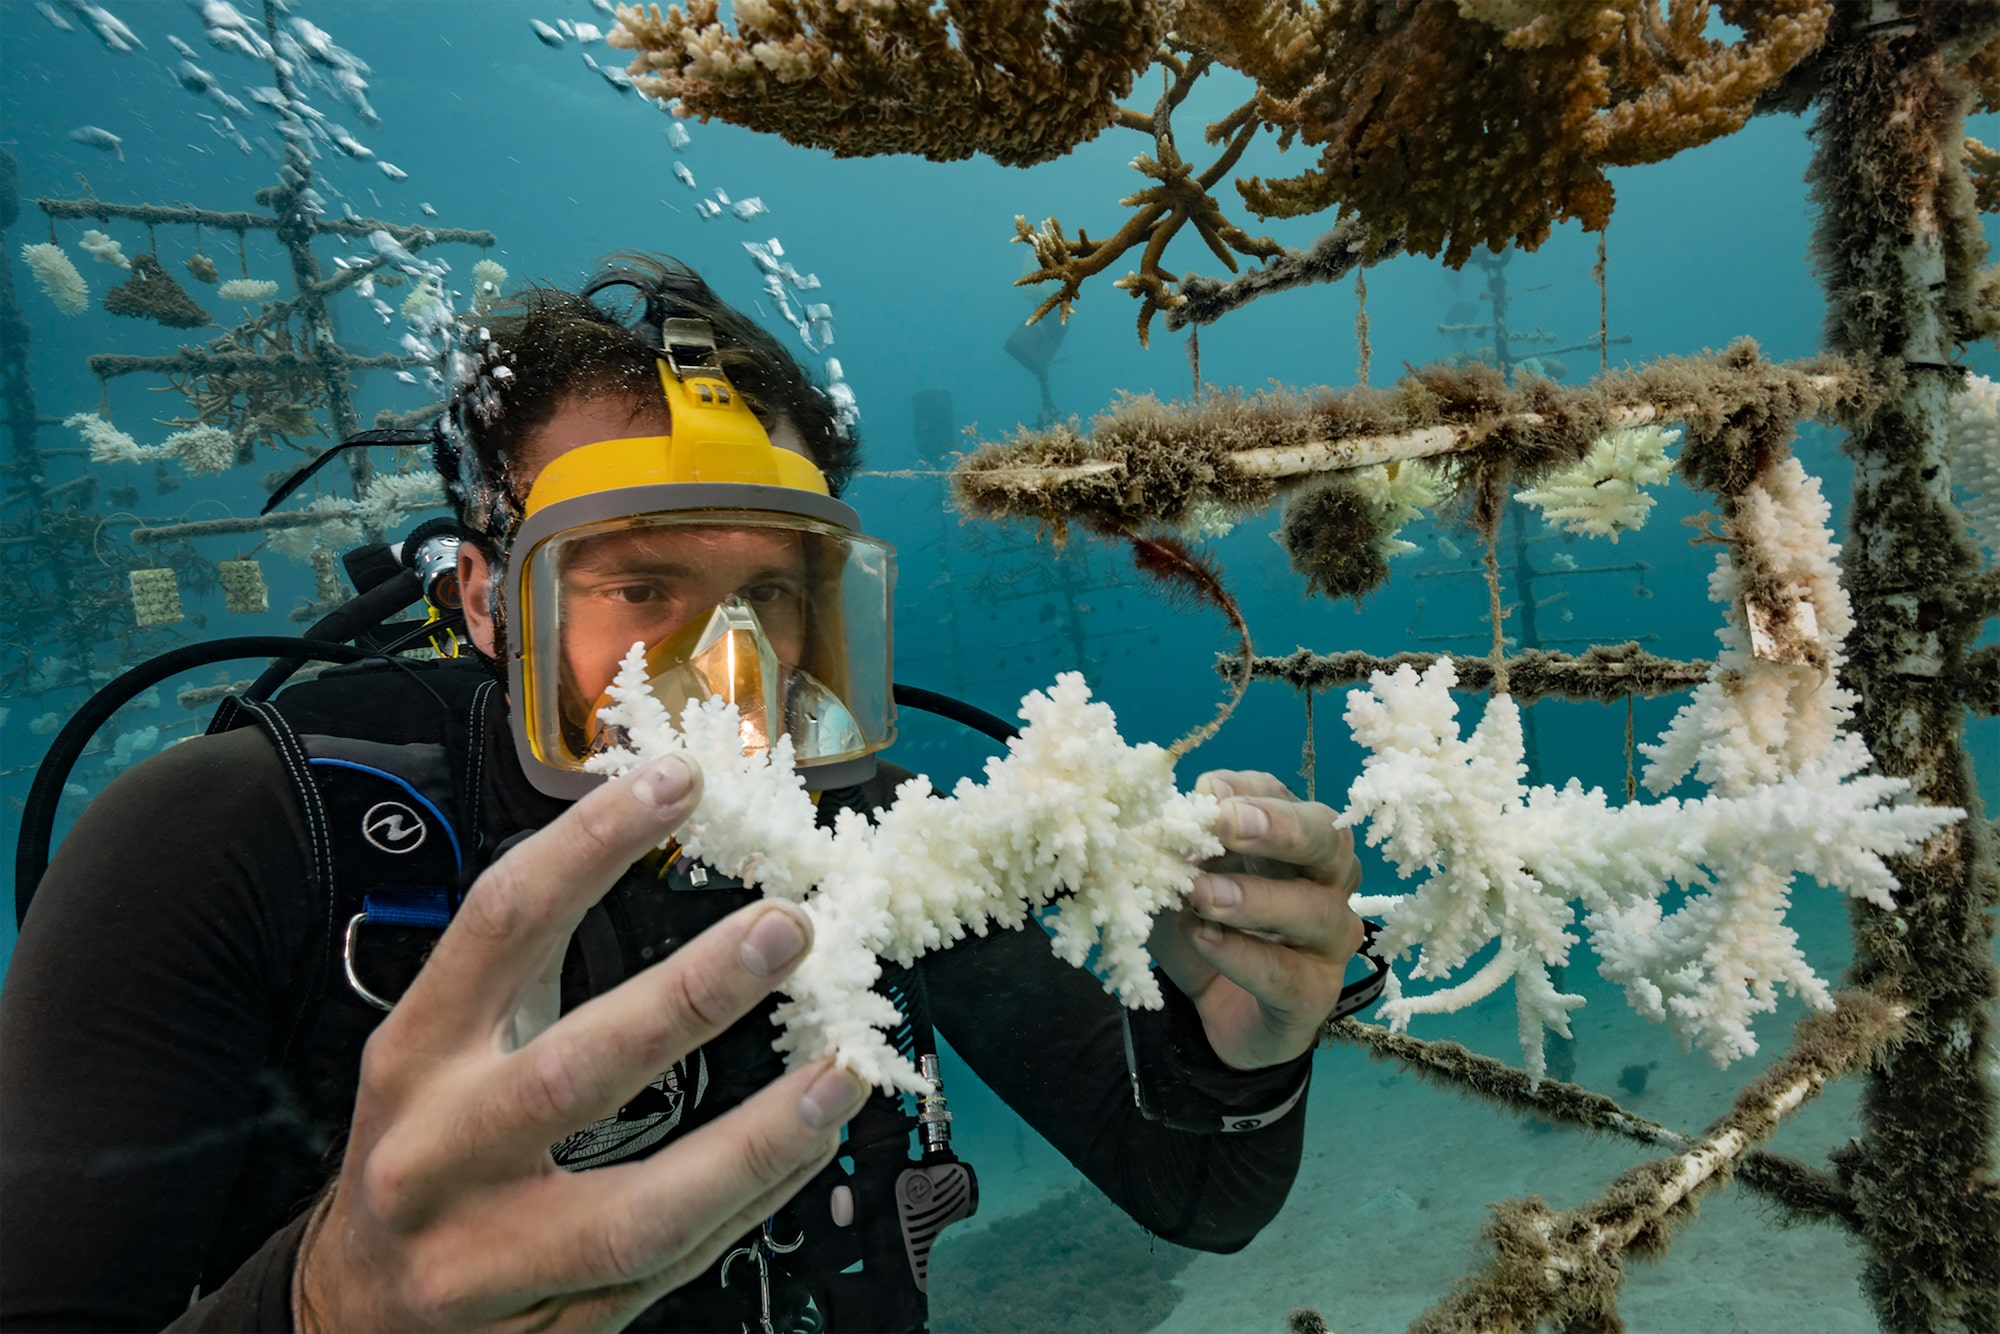 alexis-rosenfeld-sony-A7RM2-diver-inspects-a-piece-of-white-coral-underwater.jpg